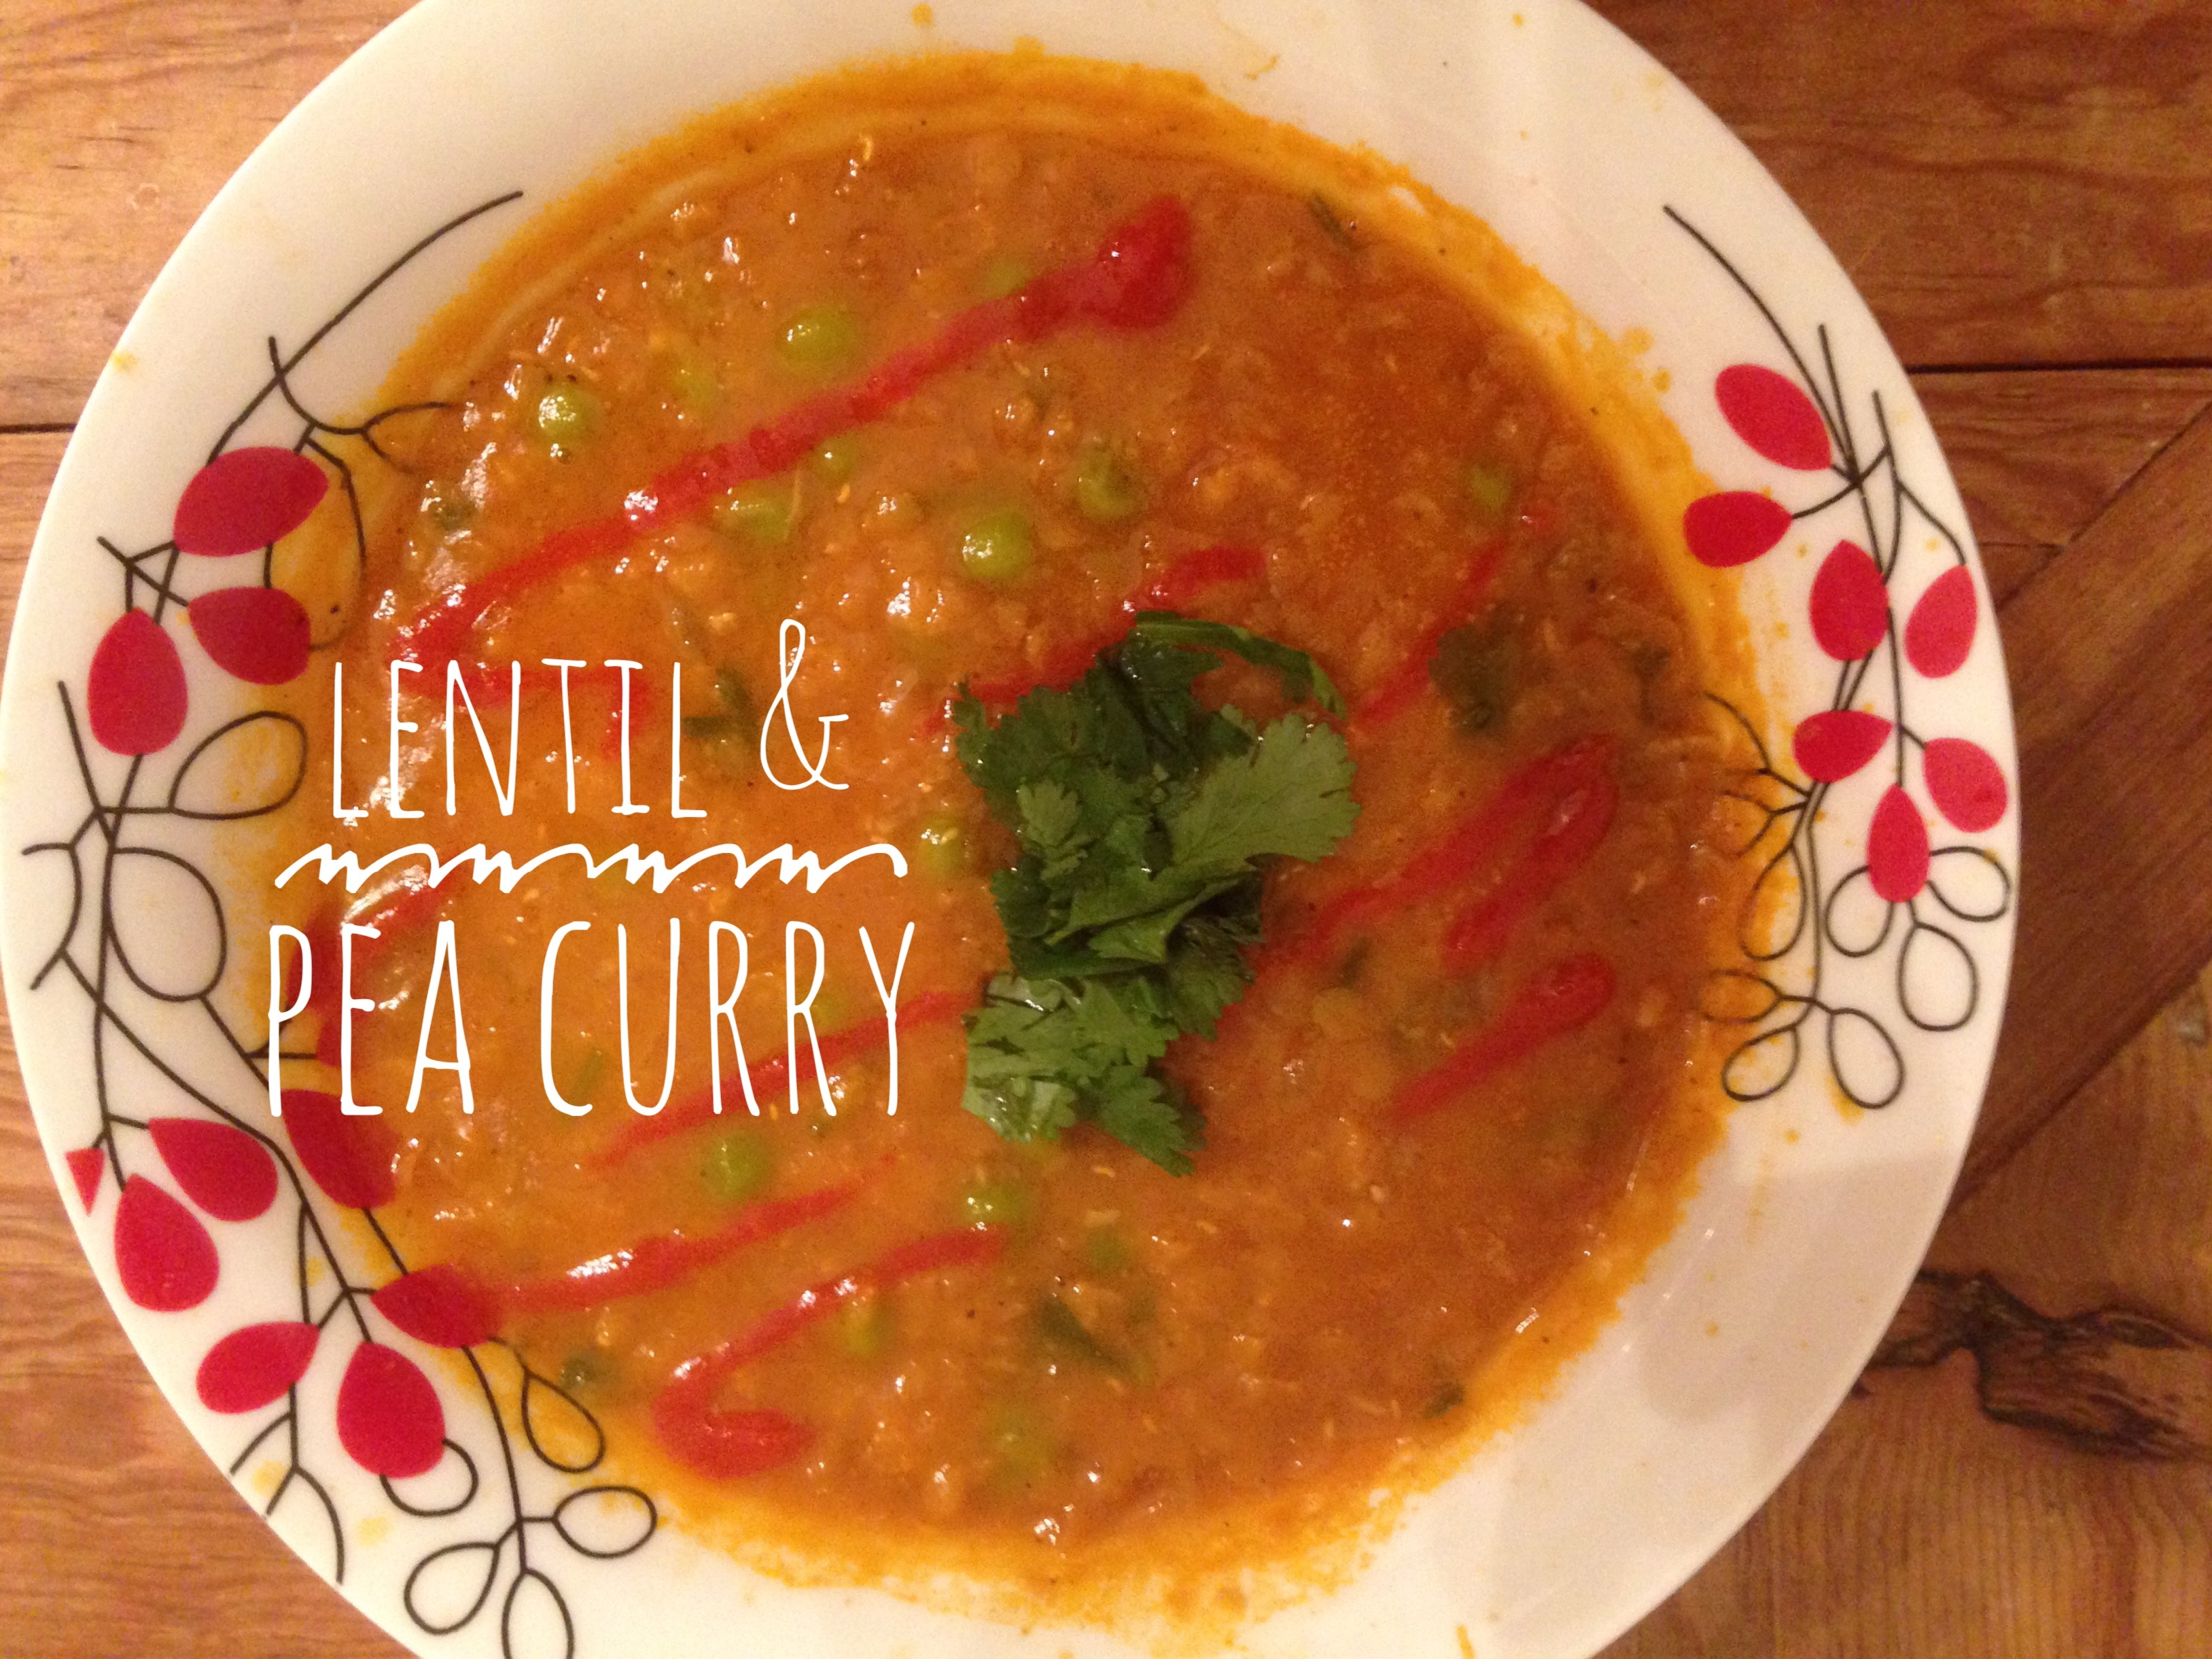 lentil & pea curry